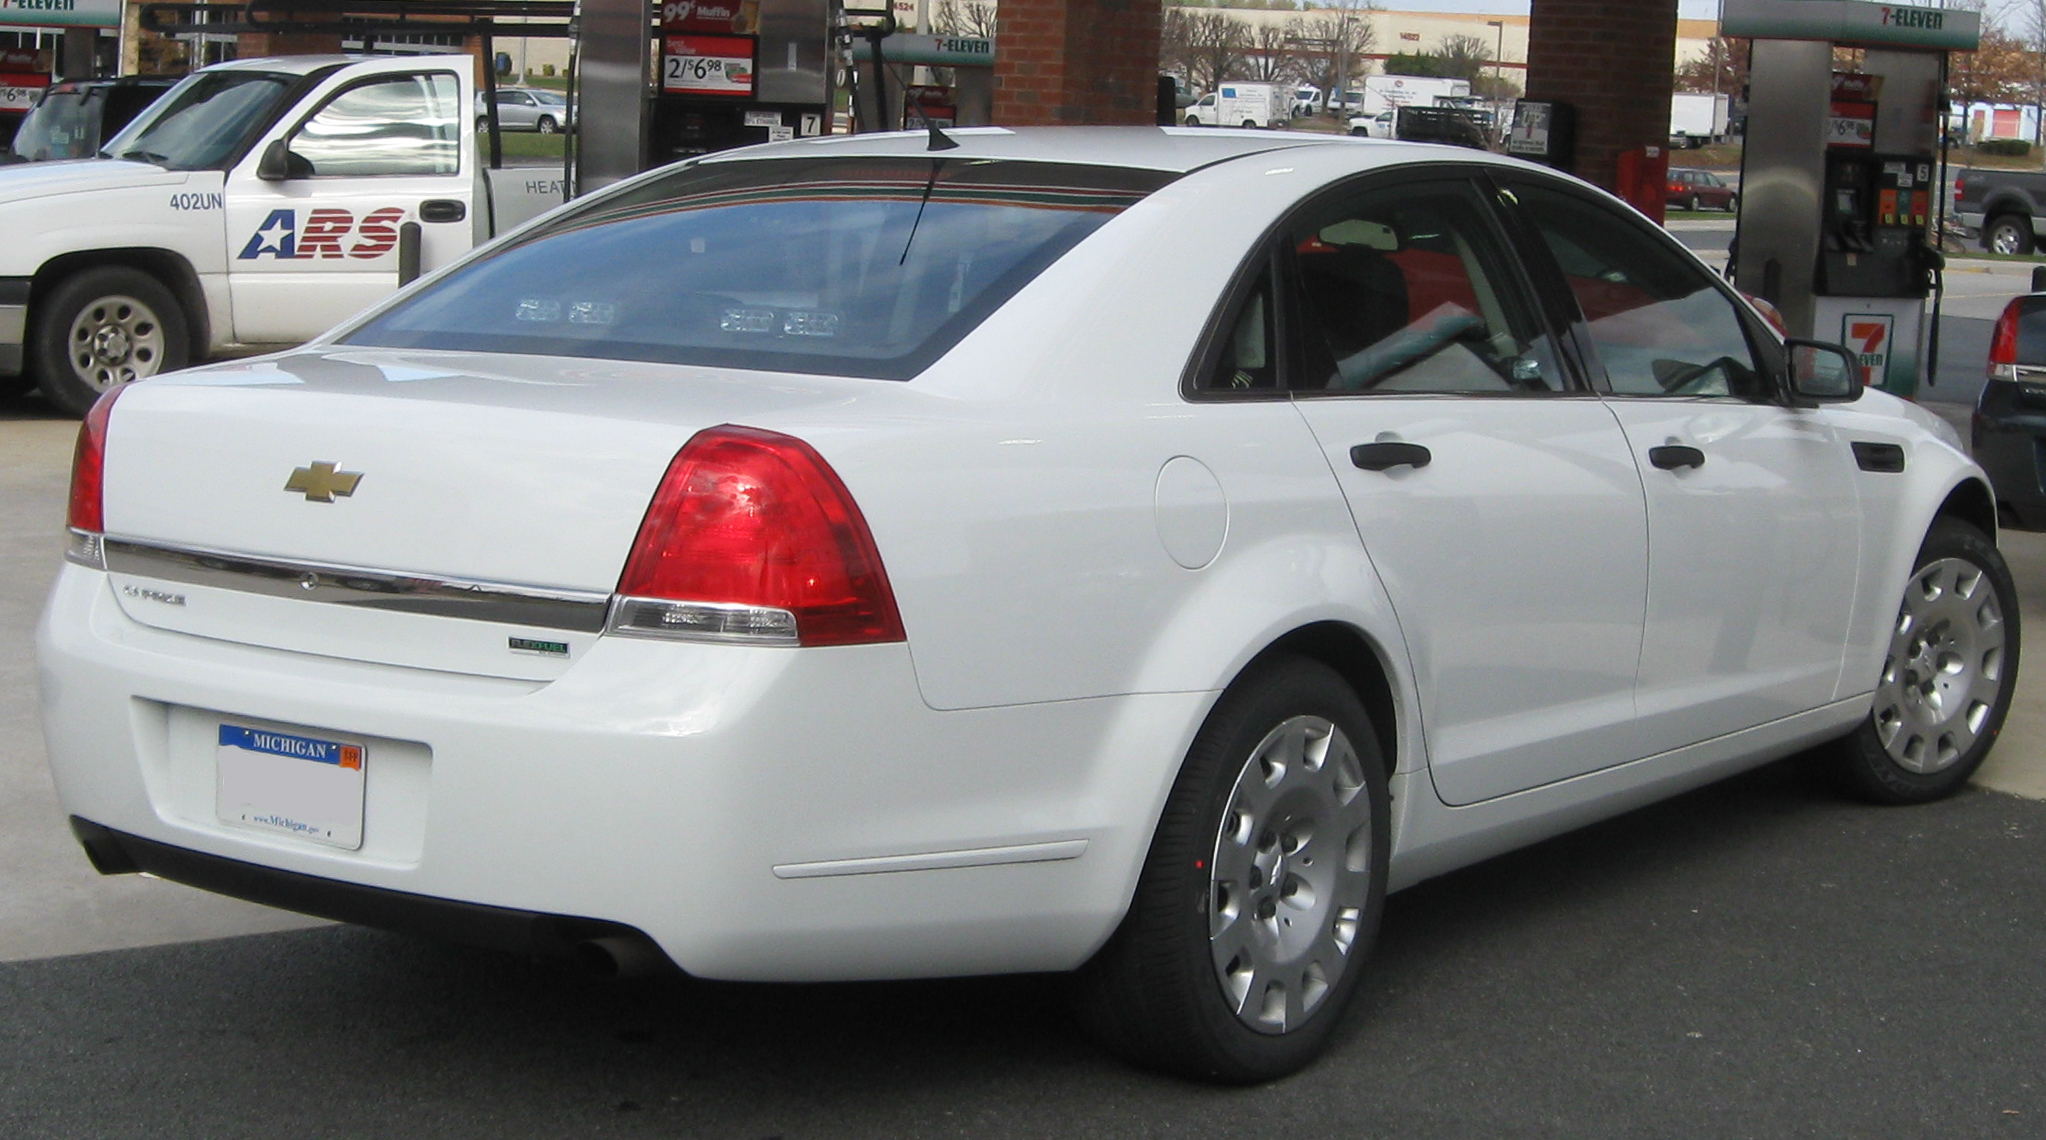 File 2011 Chevrolet Caprice Ppv 12 06 2010 Rear Jpg Wikimedia Commons